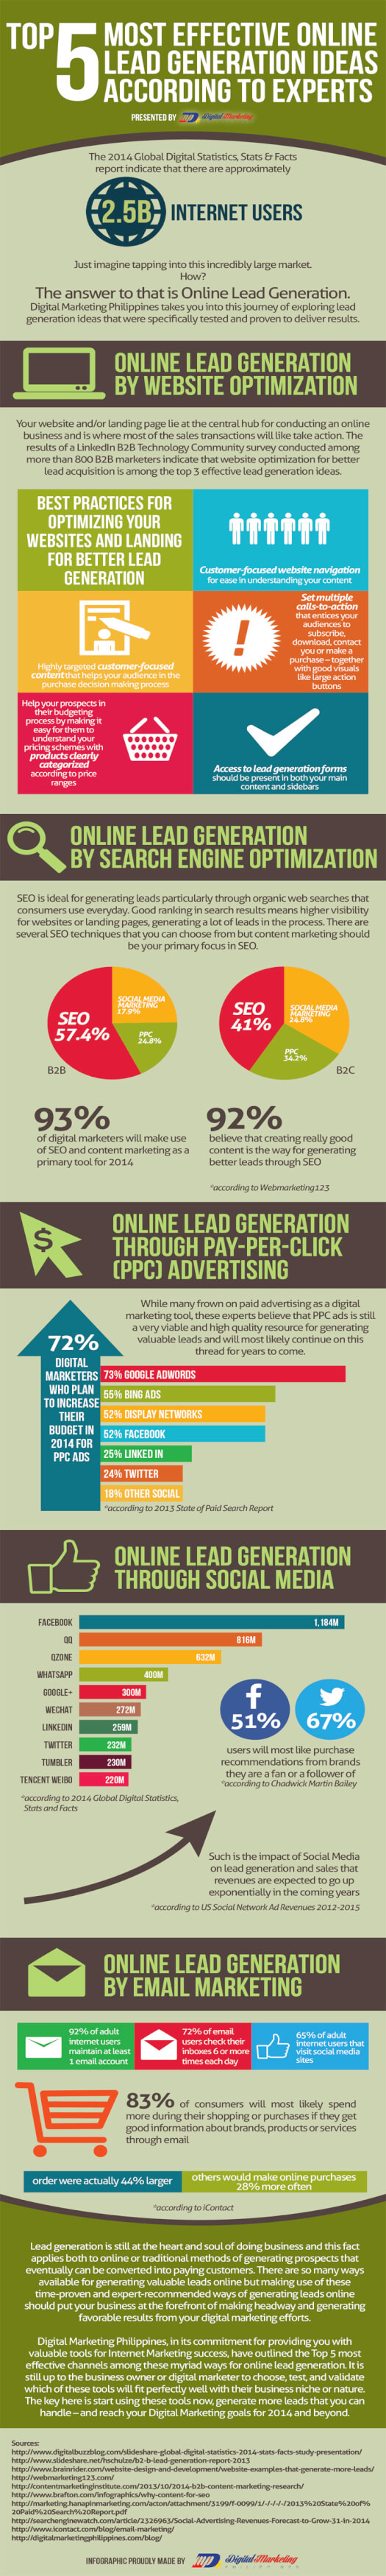 5 Most Effective Online Lead Generation Strategies